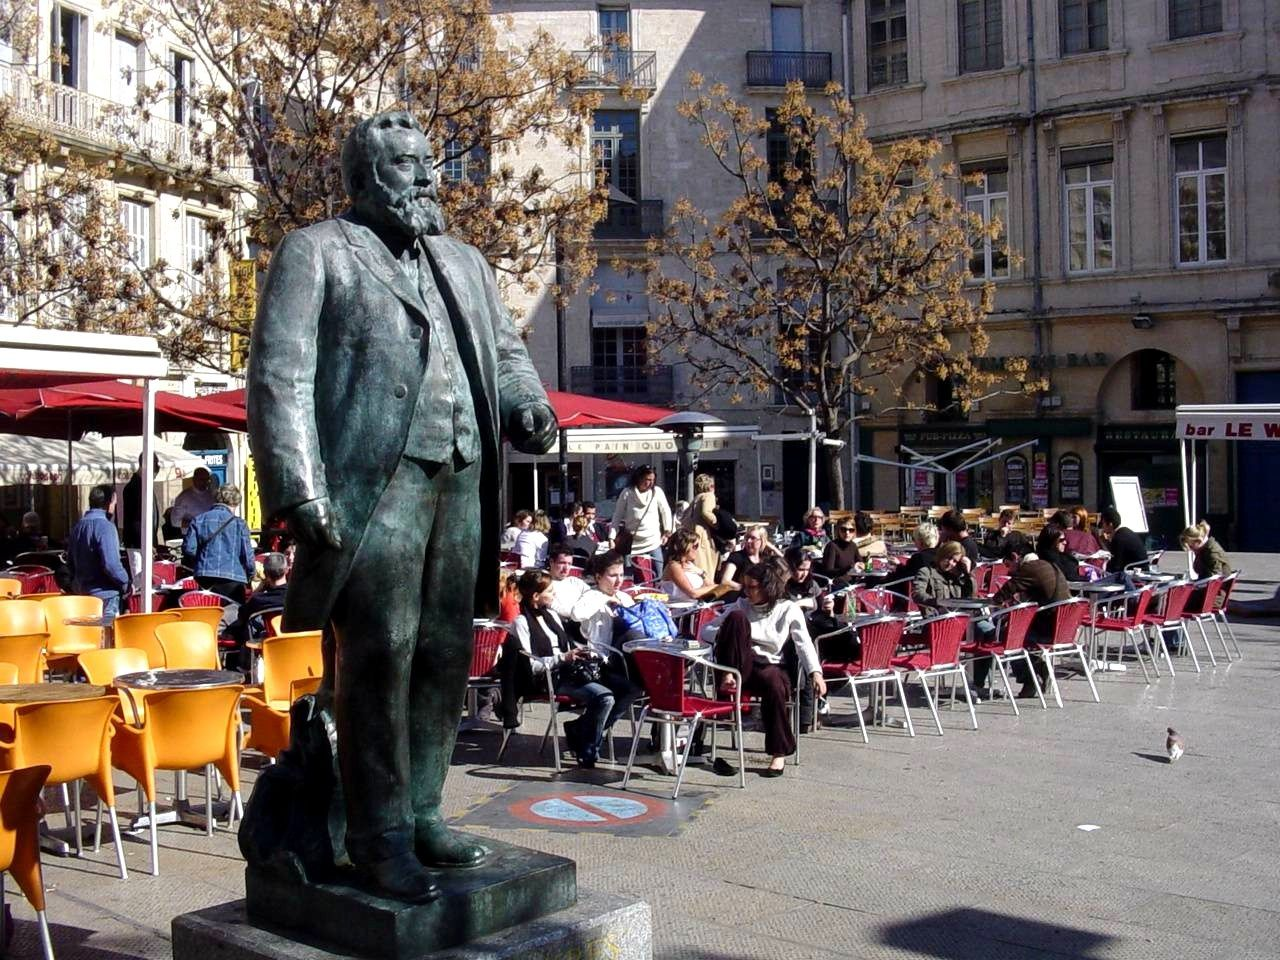 jean-jaures-Place-Montpellier-copie-1.jp